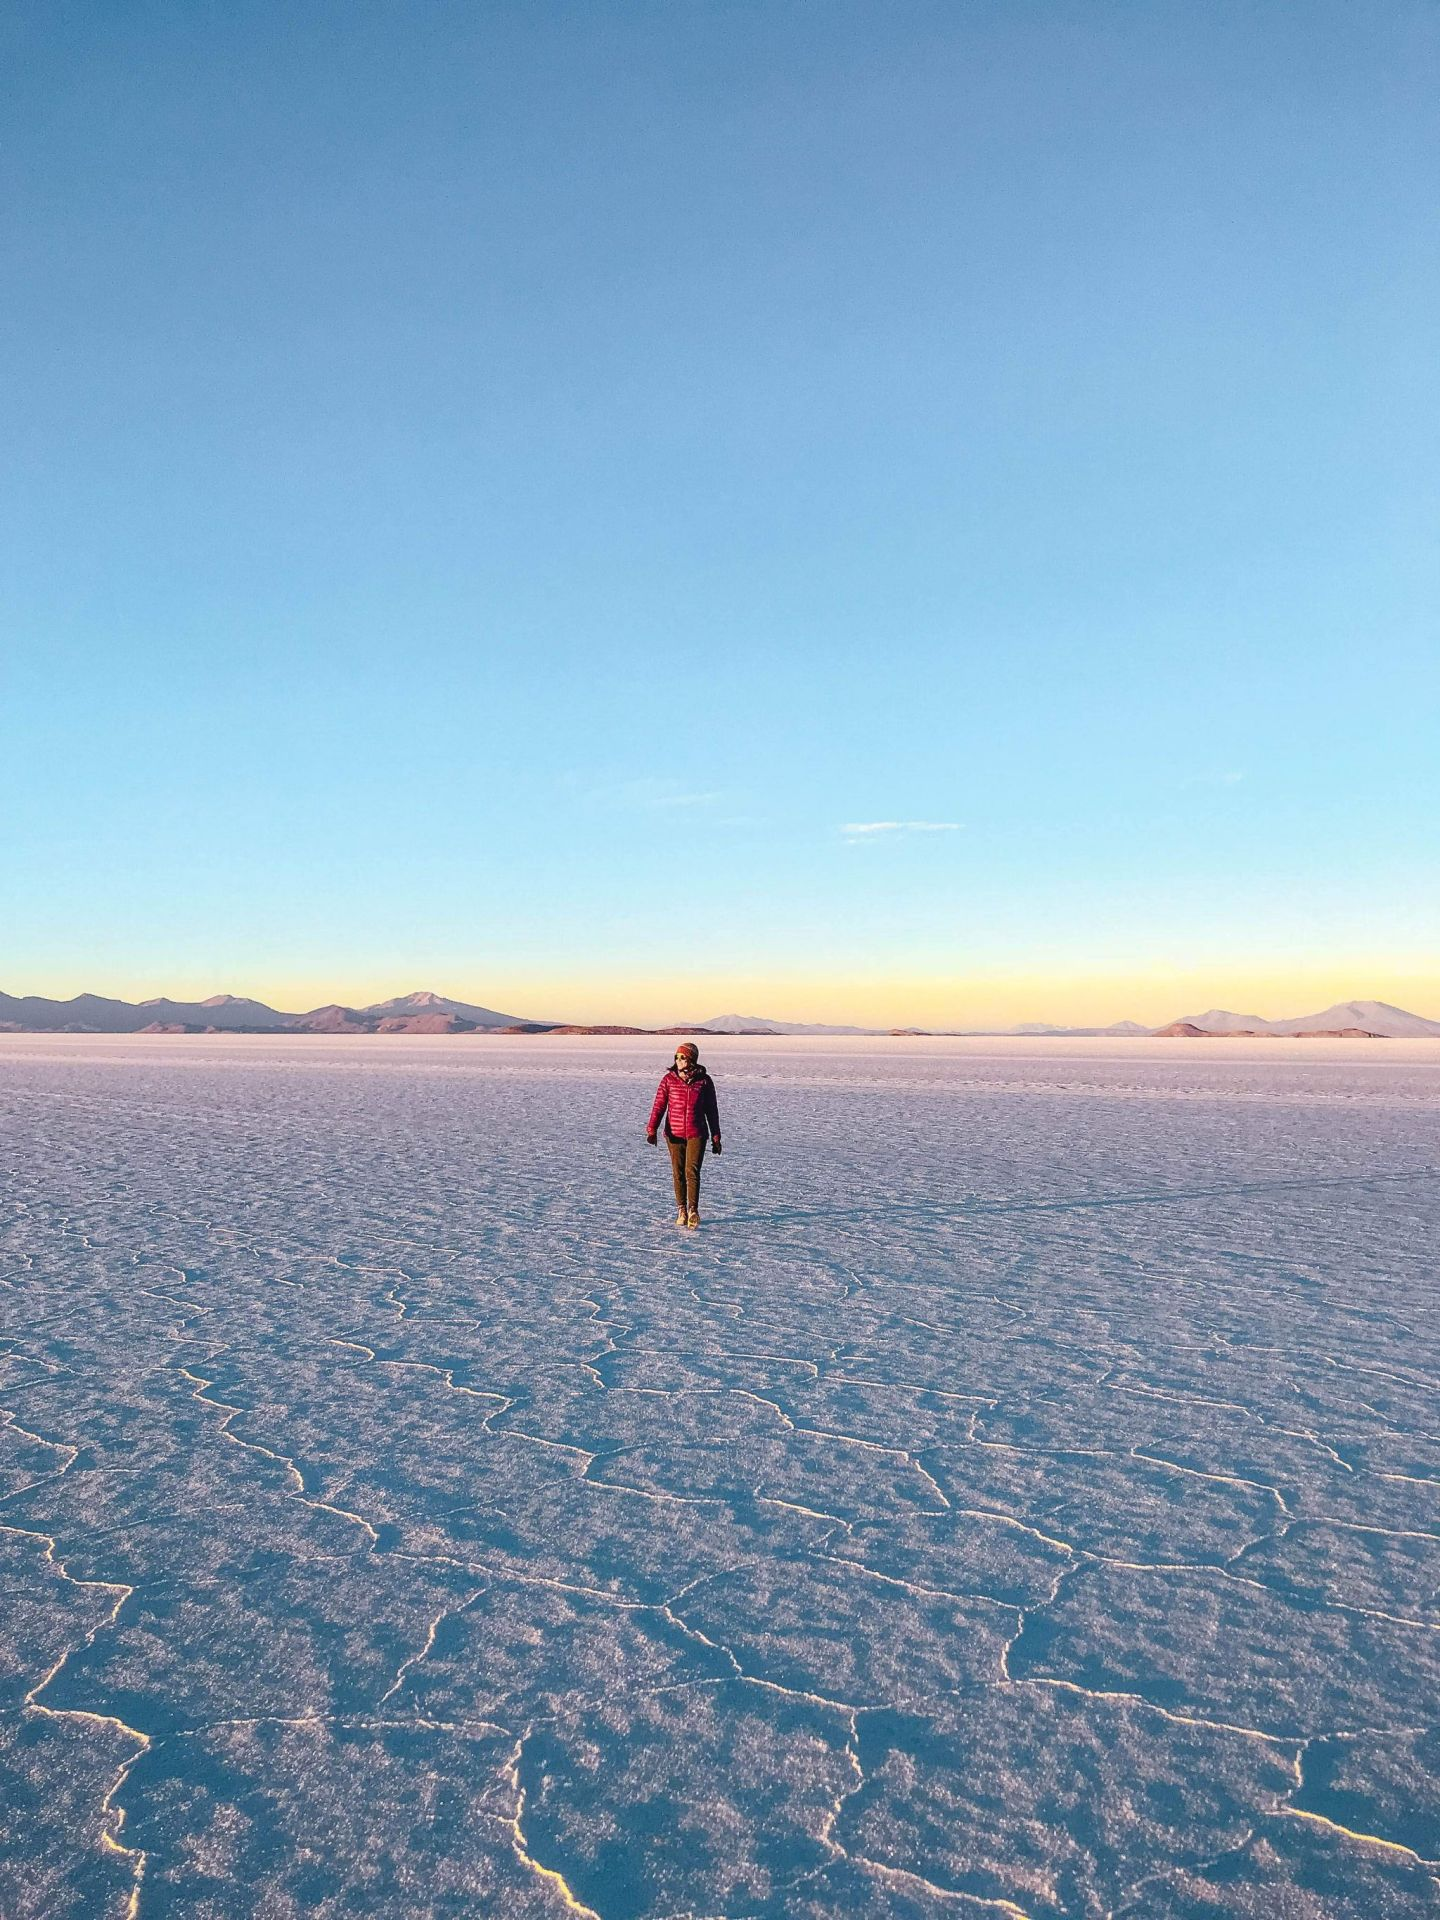 Our Salar de Uyuni Salt Flats Tour from Atacama with Cruz Andina